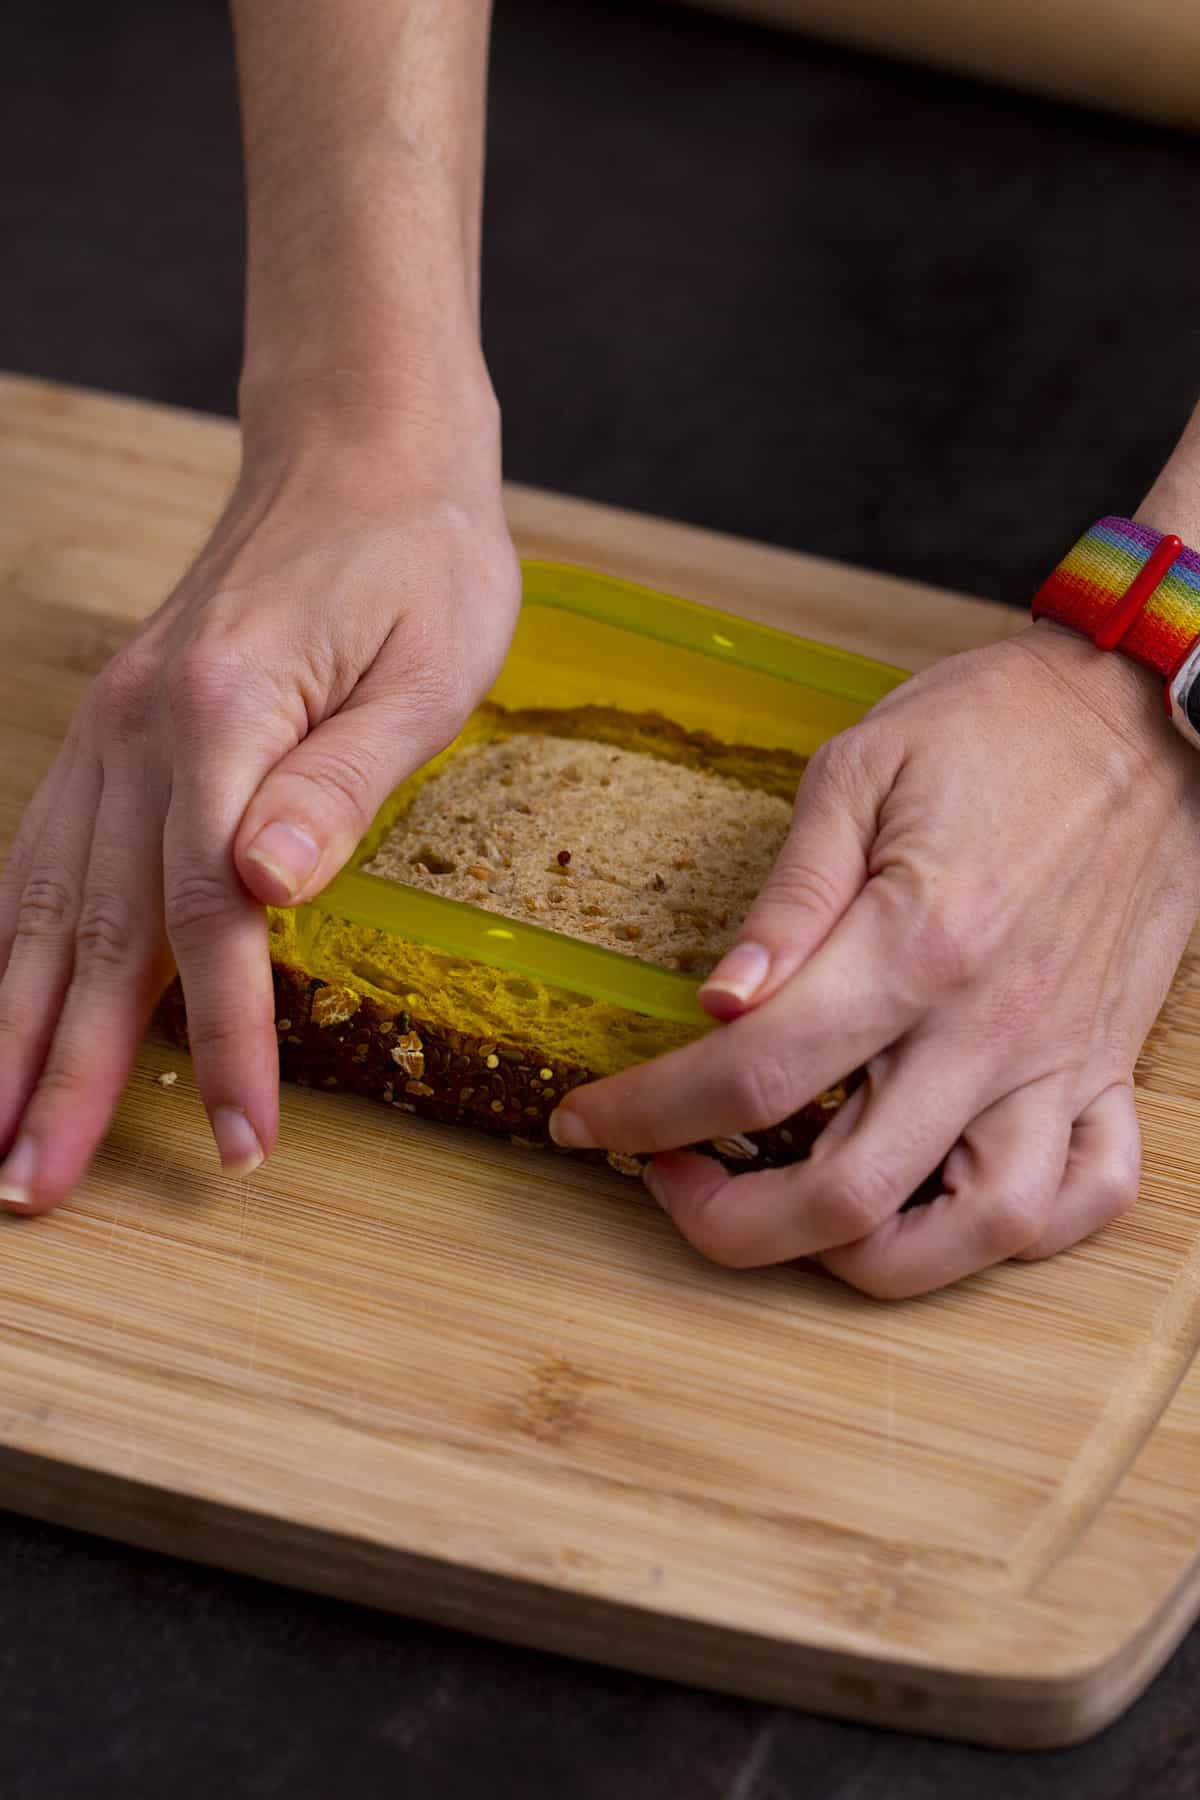 Press outer shape of sandwich sealer onto bread to cut sandwich and remove crusts.